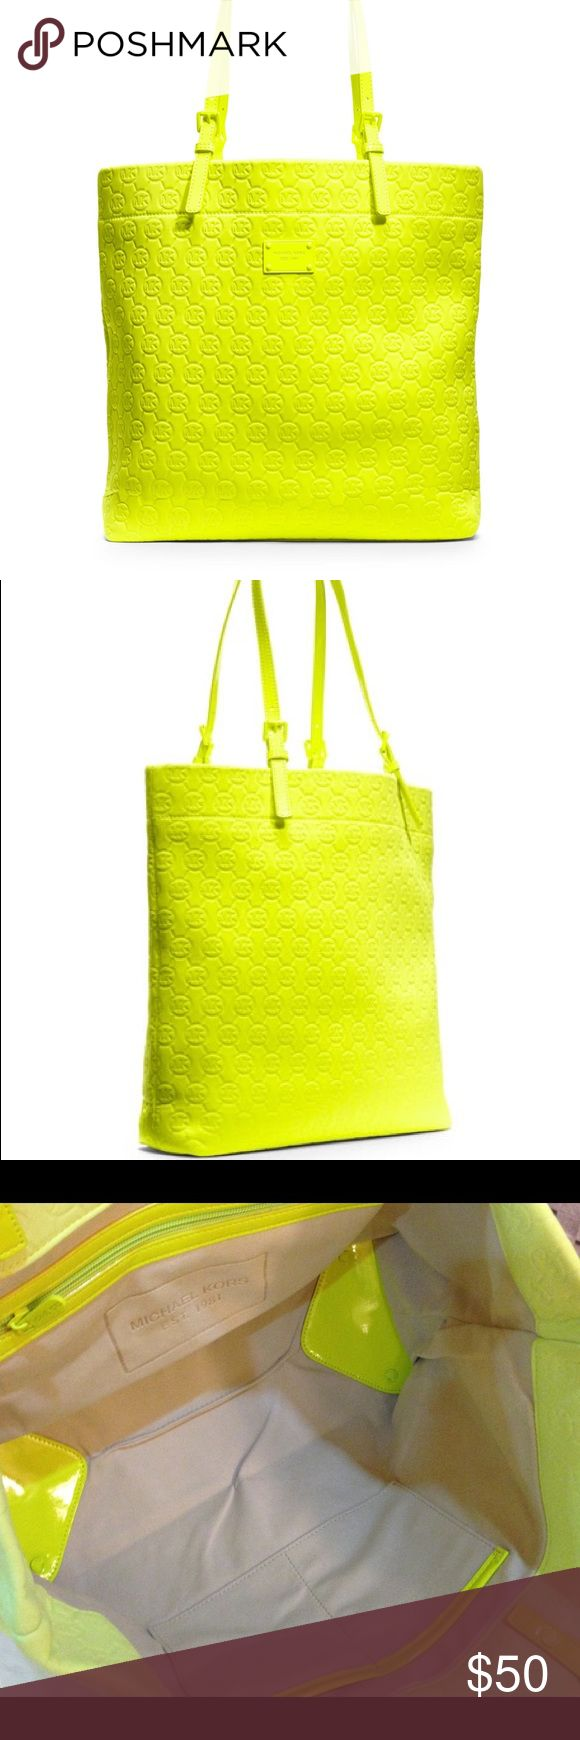 Michael Kors Neoprene Yellow Handbag Really cute as an overnight bag! Fun neon color. There is a small stain inside, but otherwise it's like new. Michael Kors Bags Shoulder Bags